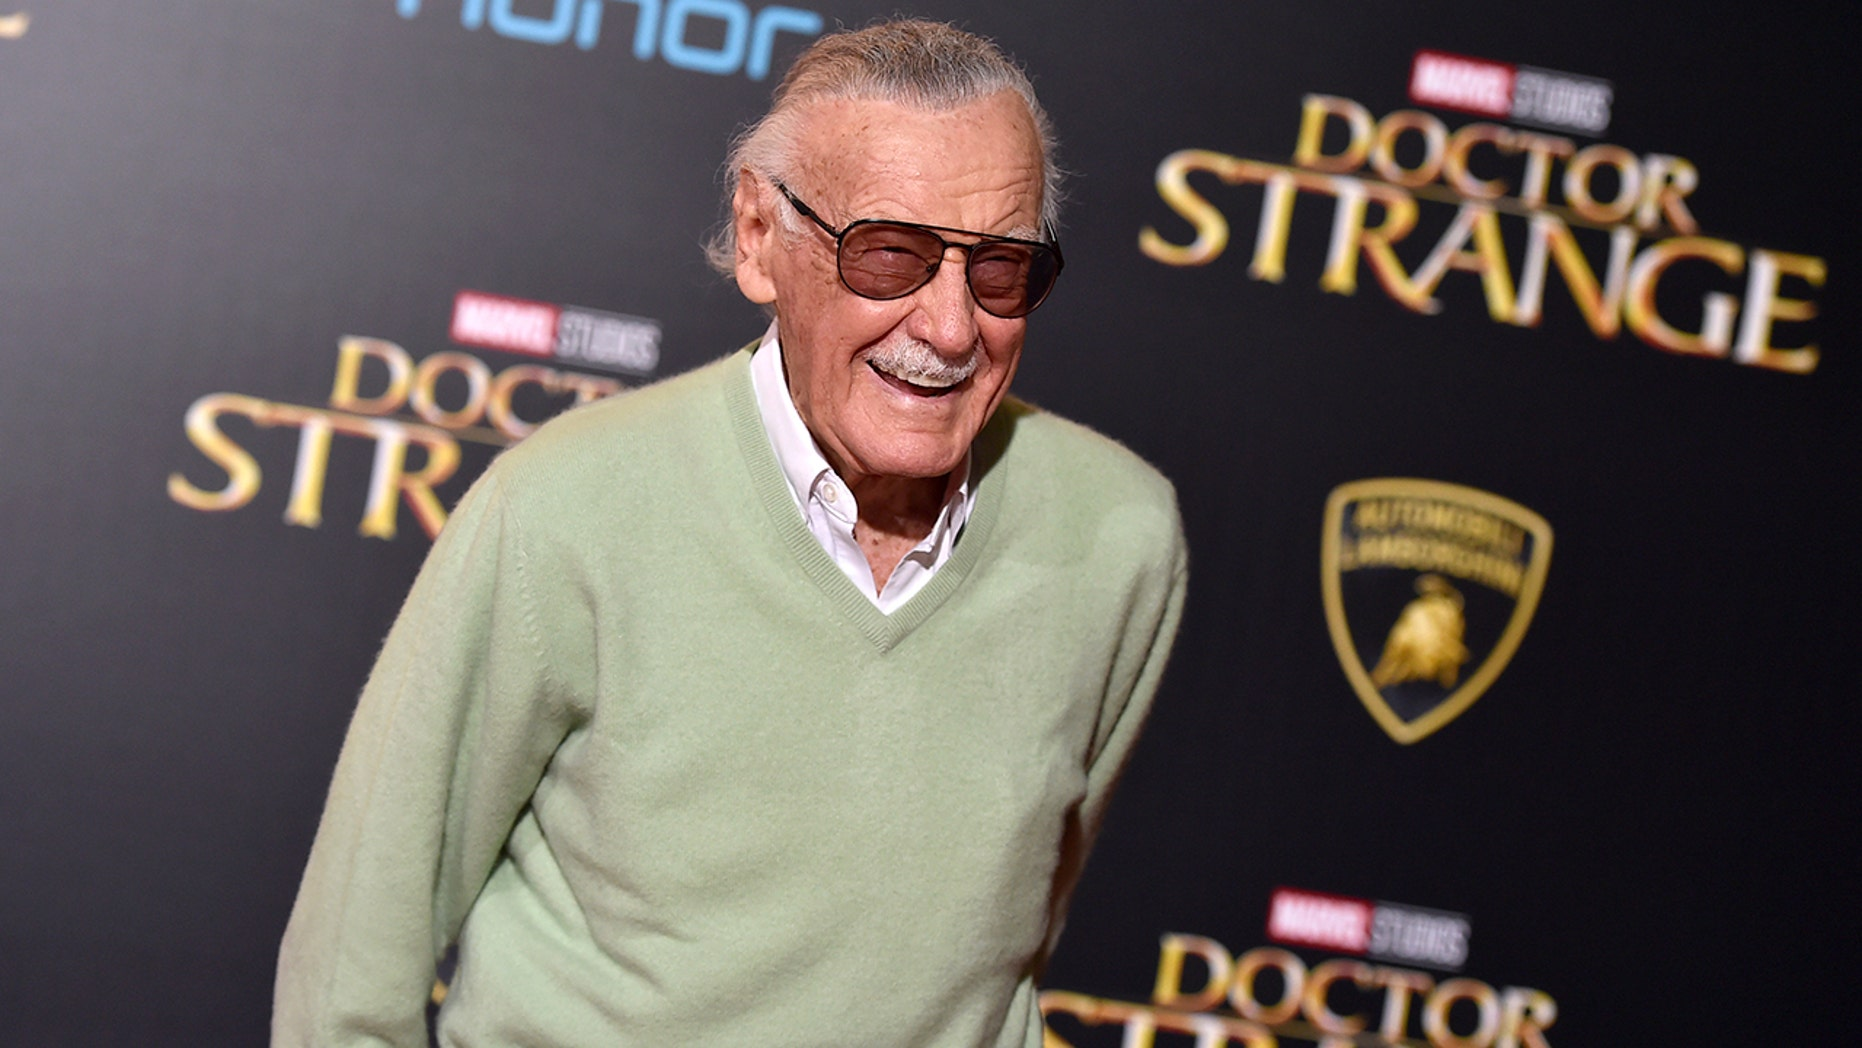 Stan Lee returned to Twitter on Thursday with a video message for his fans.